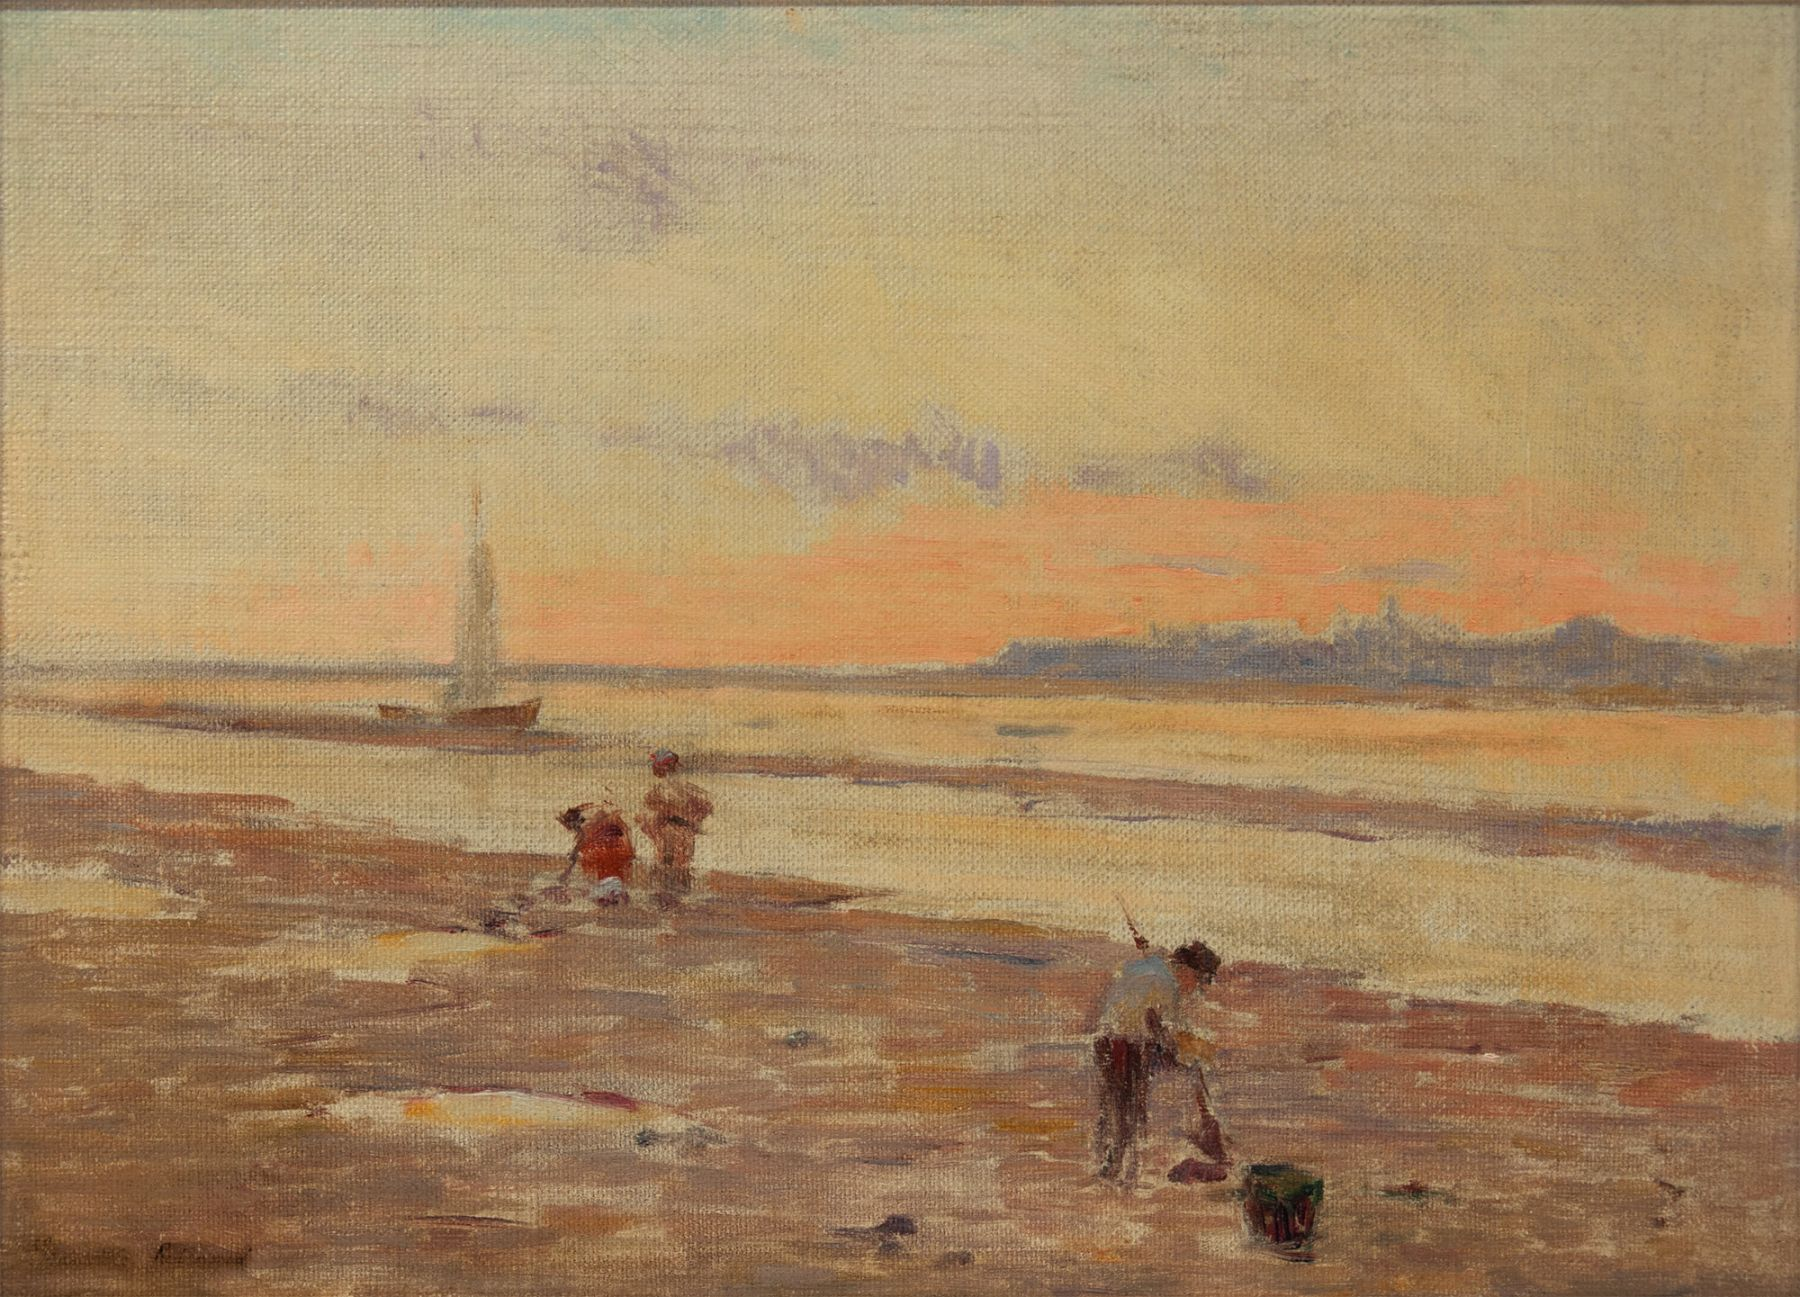 GRANVILLE REDMOND (1871-1935), The Clam Diggers